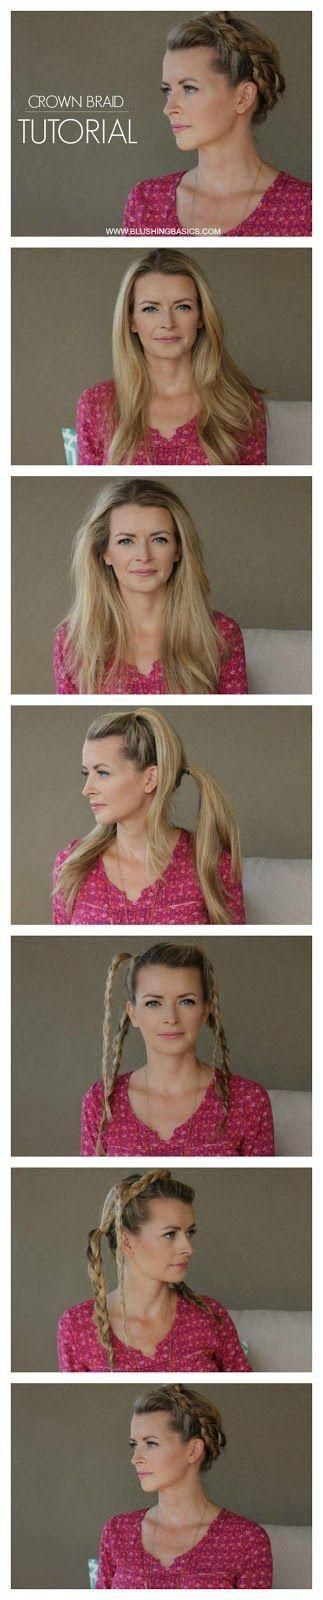 Crown Braid Tutorial - the easiest, fool proof, can't go wrong even if you tried, tutorial via